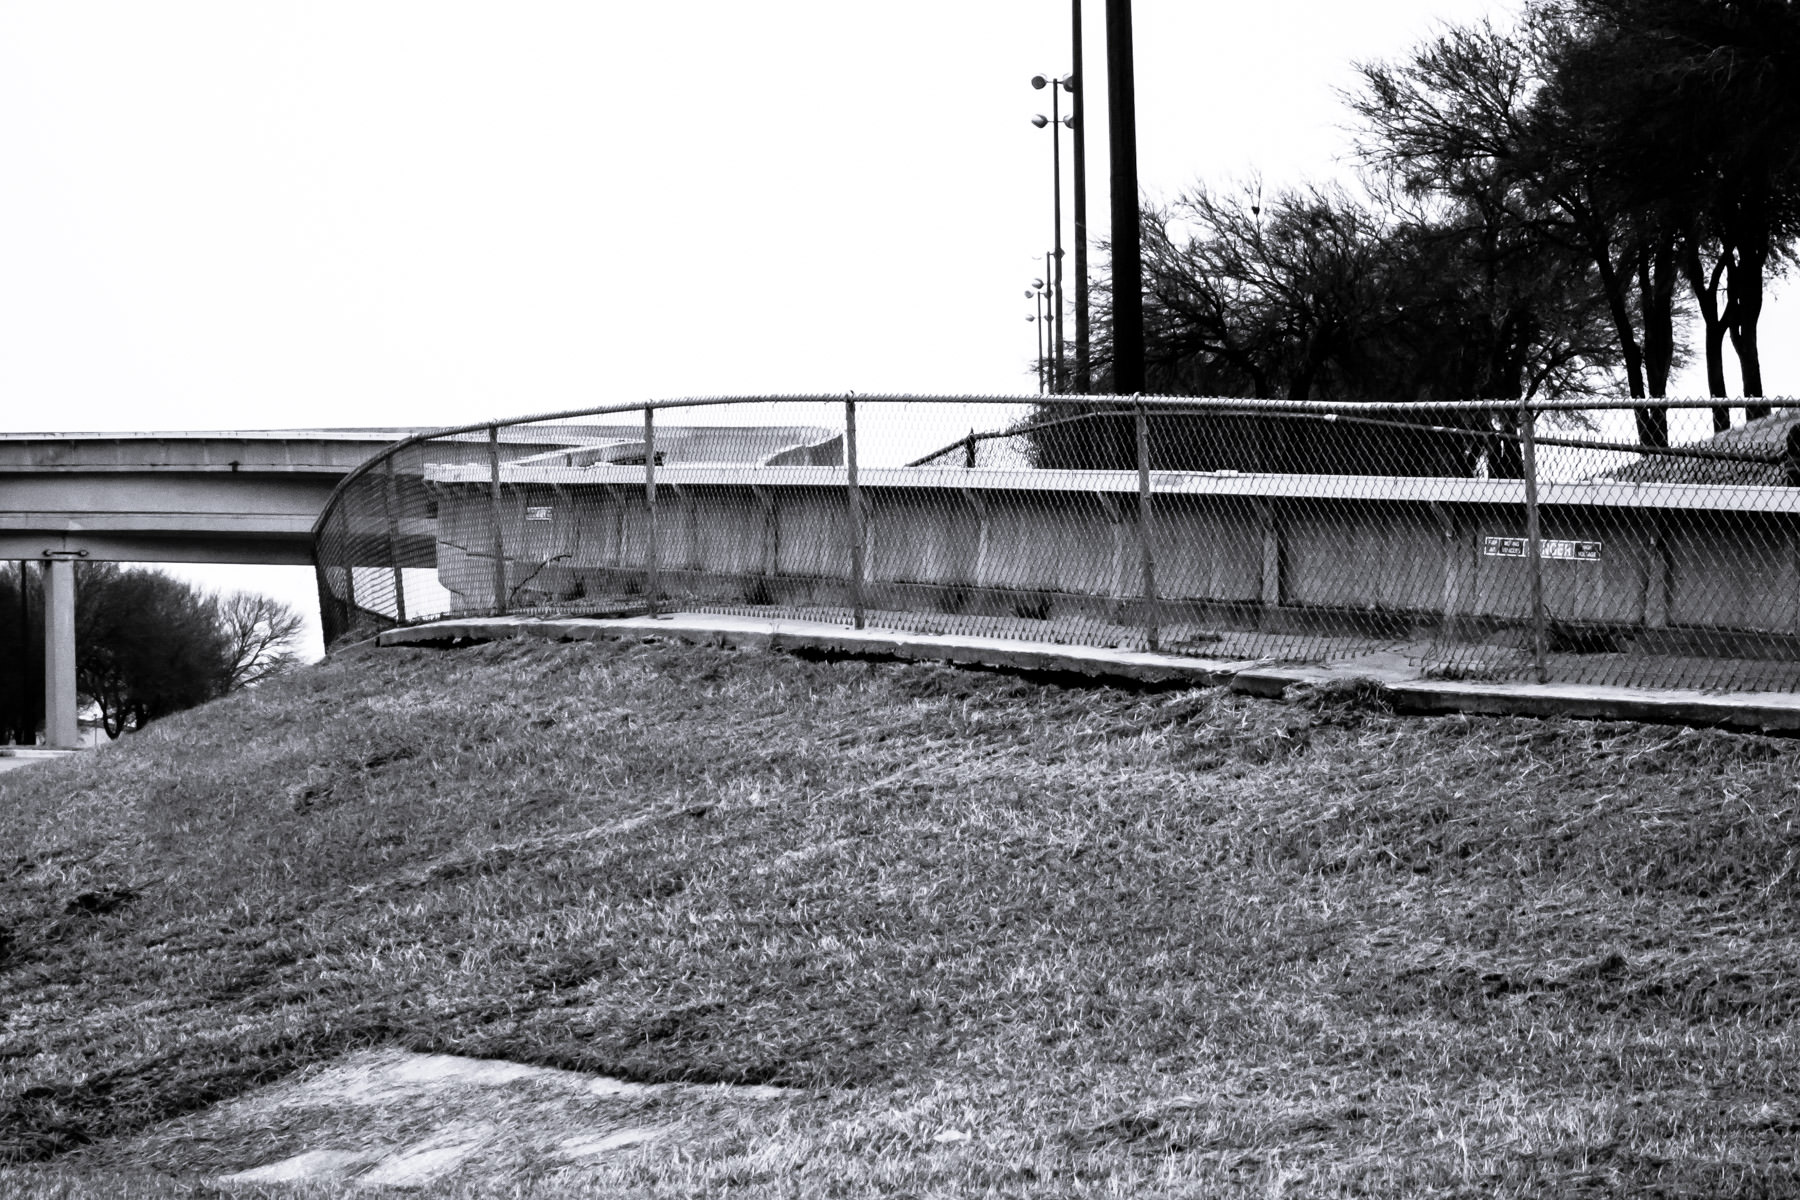 Track for the now-abandoned Airtrans people mover at DFW International Airport.